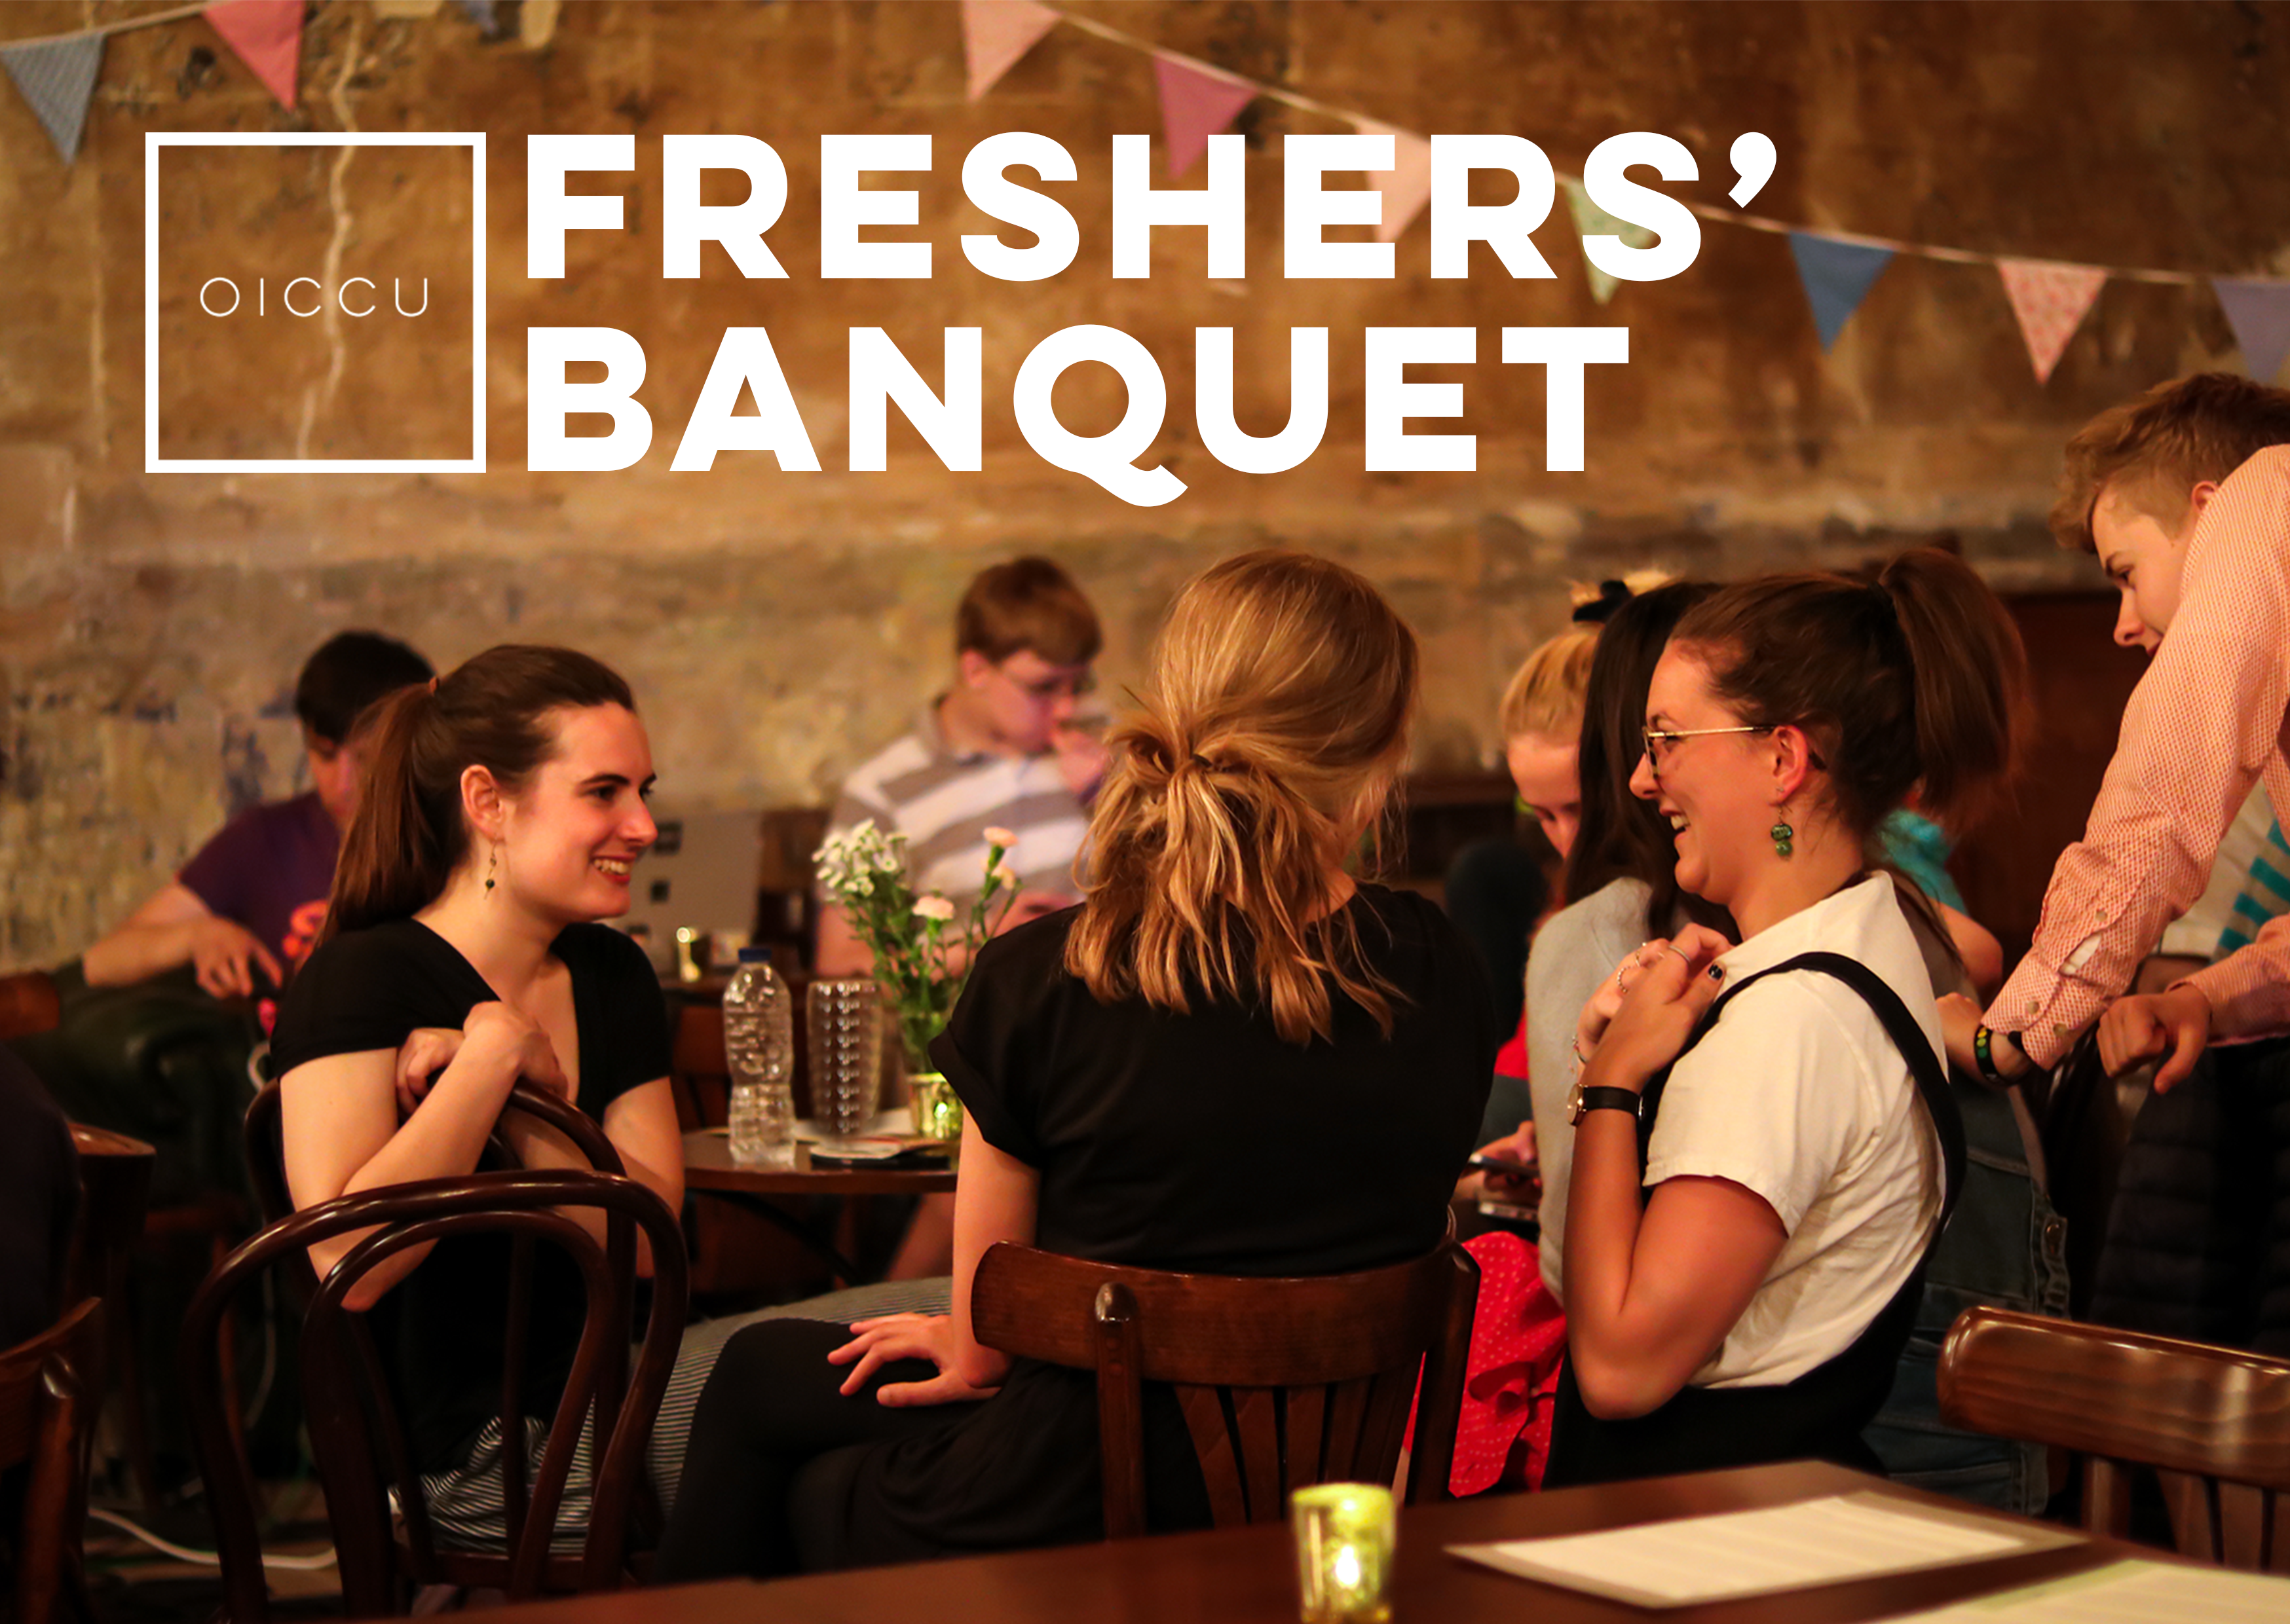 Freshers' Banquet